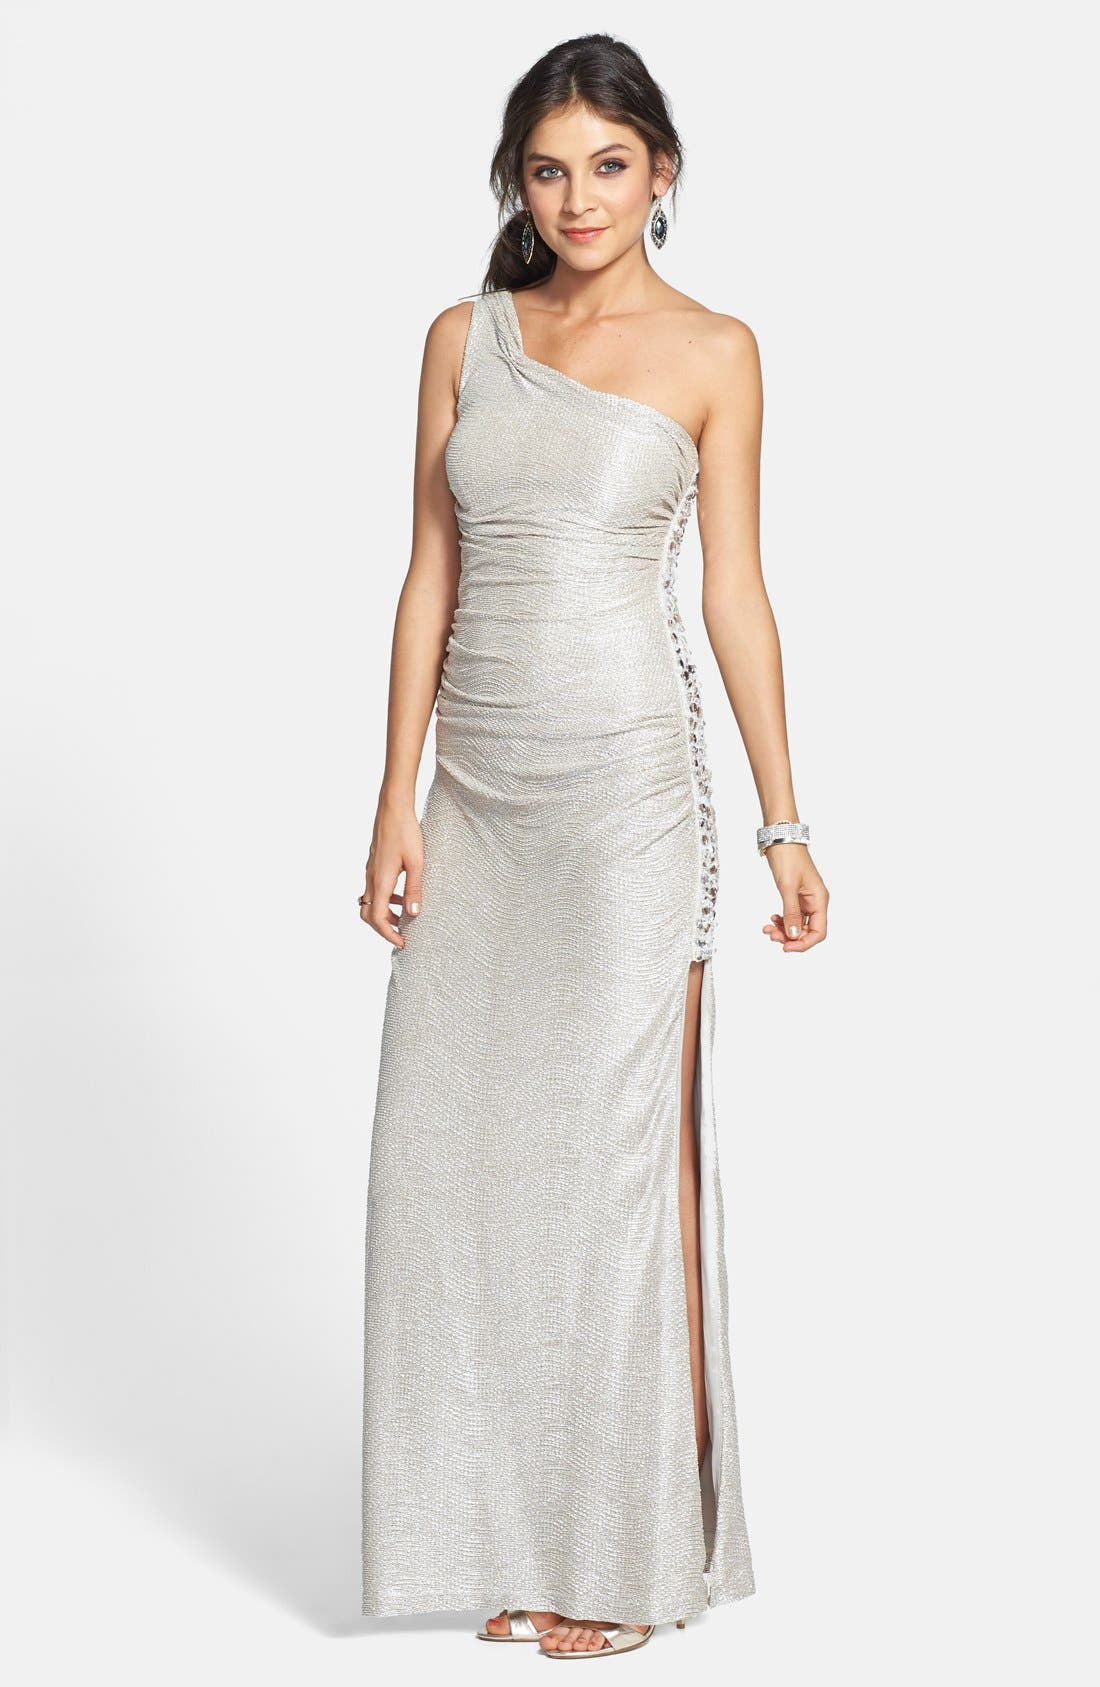 Main Image - Hailey by Adrianna Papell Embellished Textured Metallic One Shoulder Gown